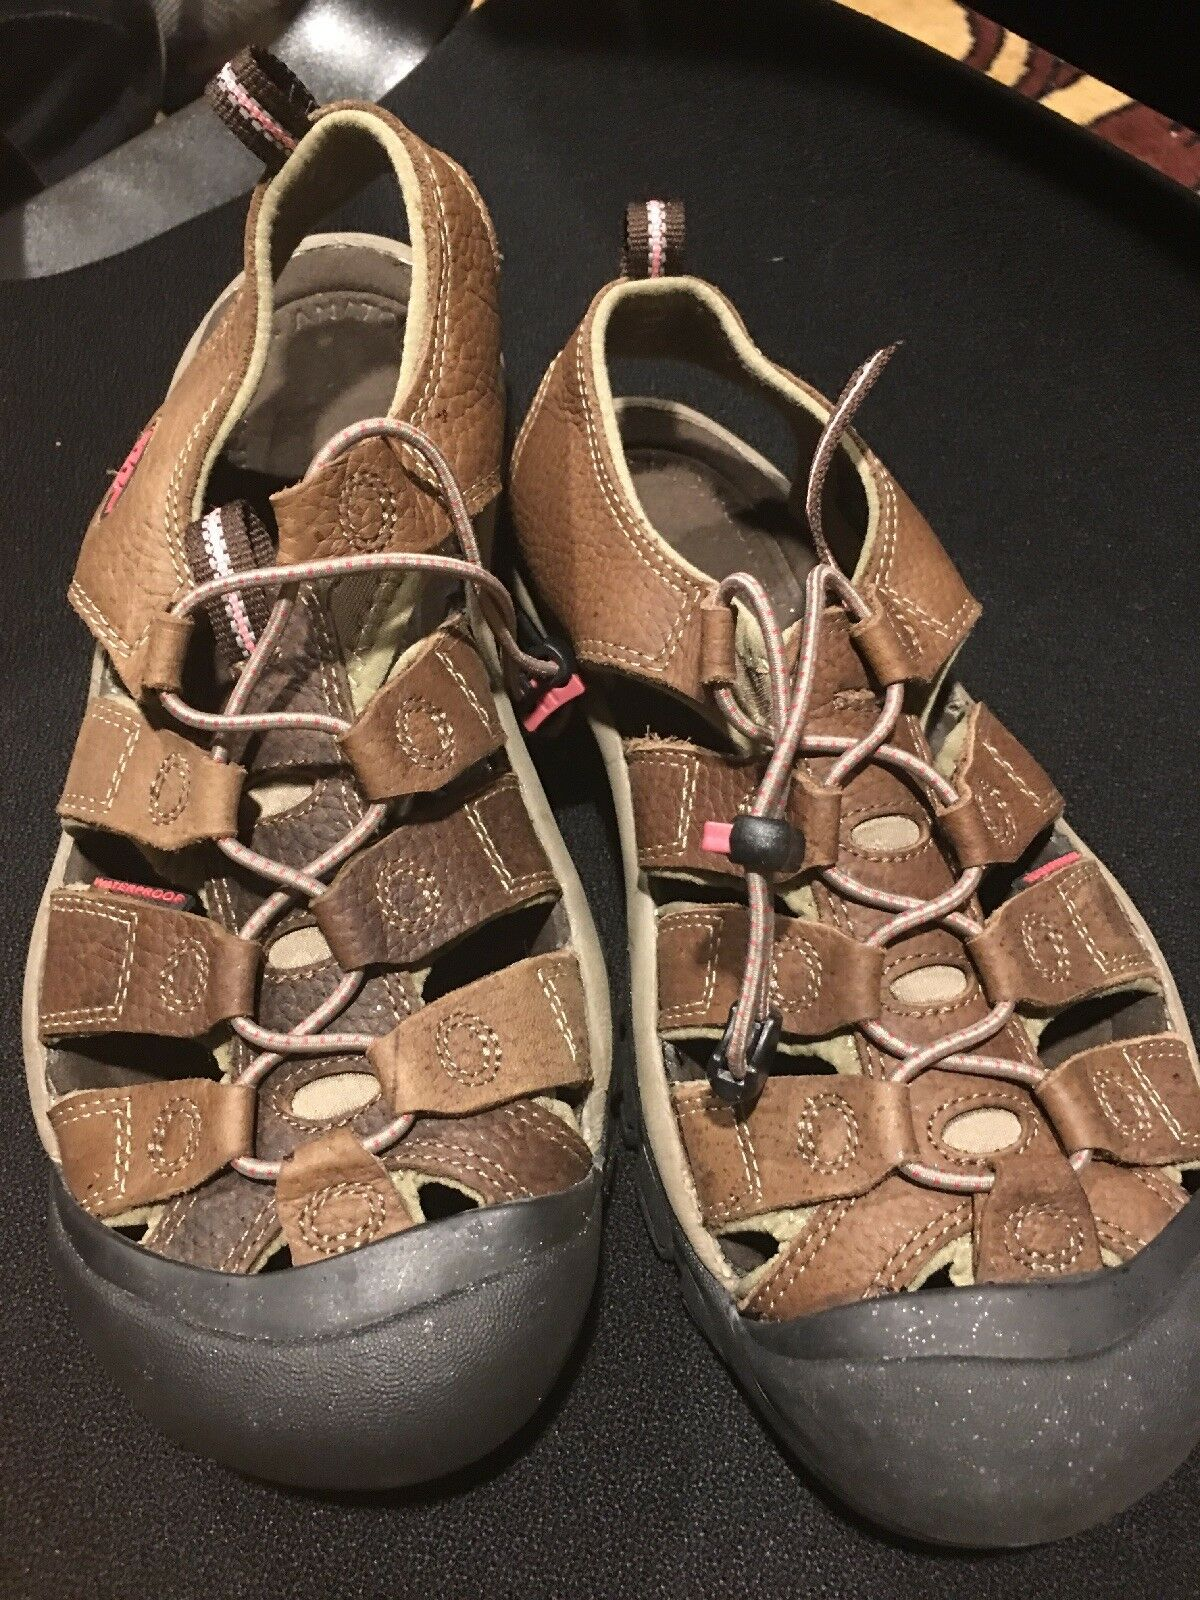 Keen Brown Leather Sport Sandals Women's Sz 9.5 Pull On Waterproof